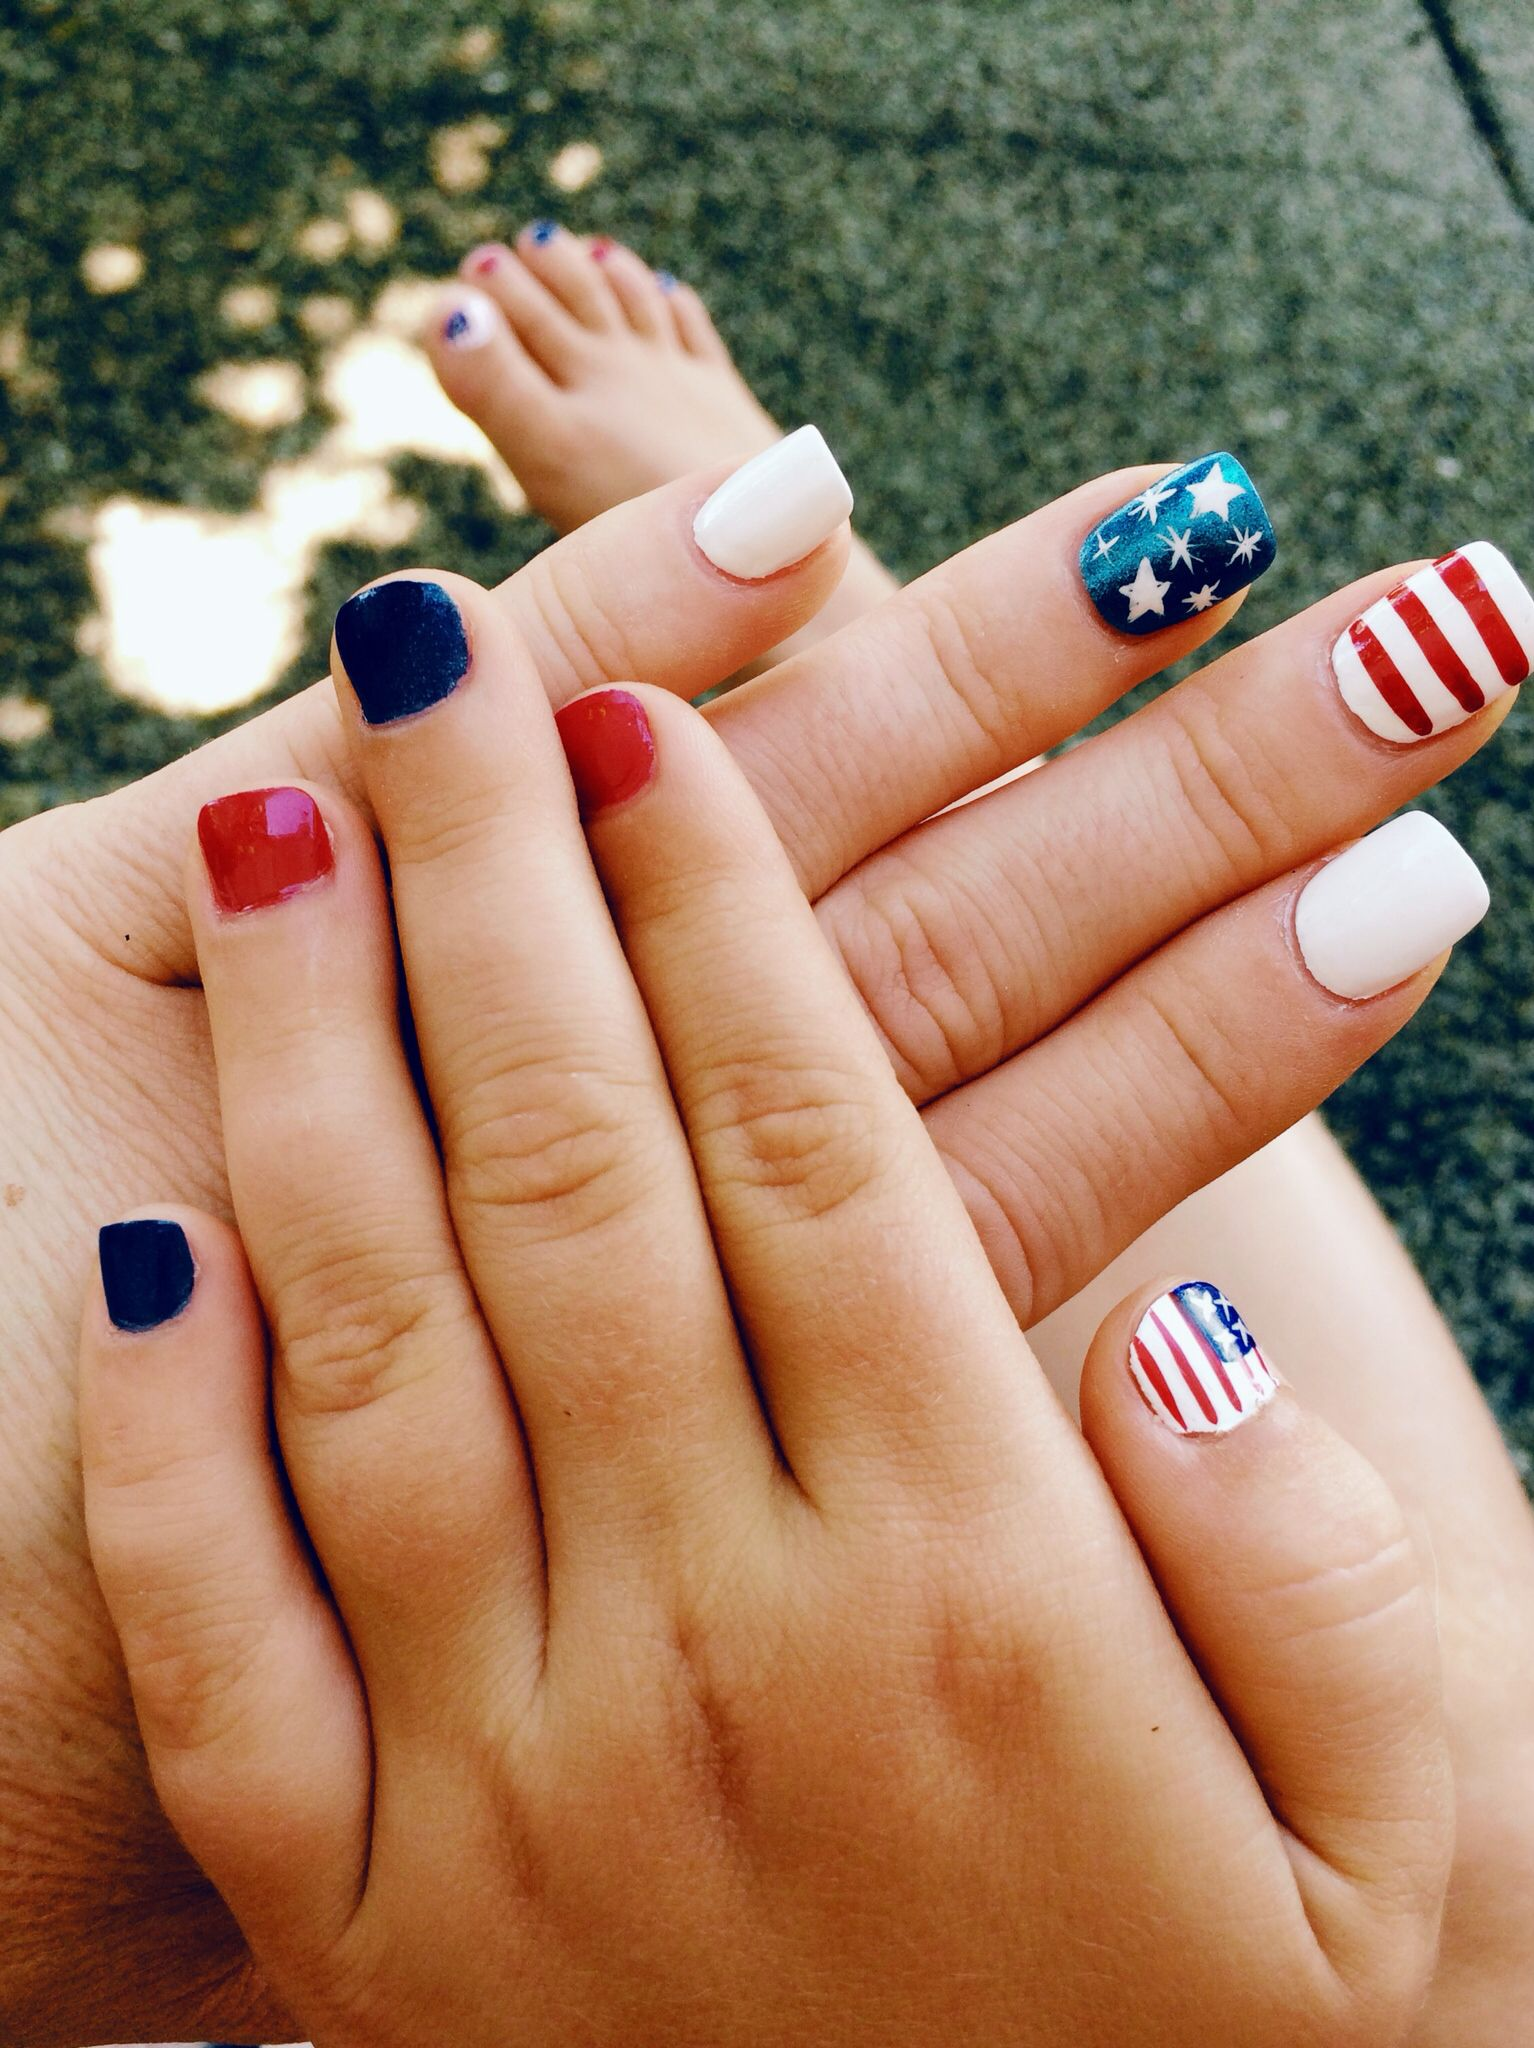 Mom & Daughter 4th of July nails!